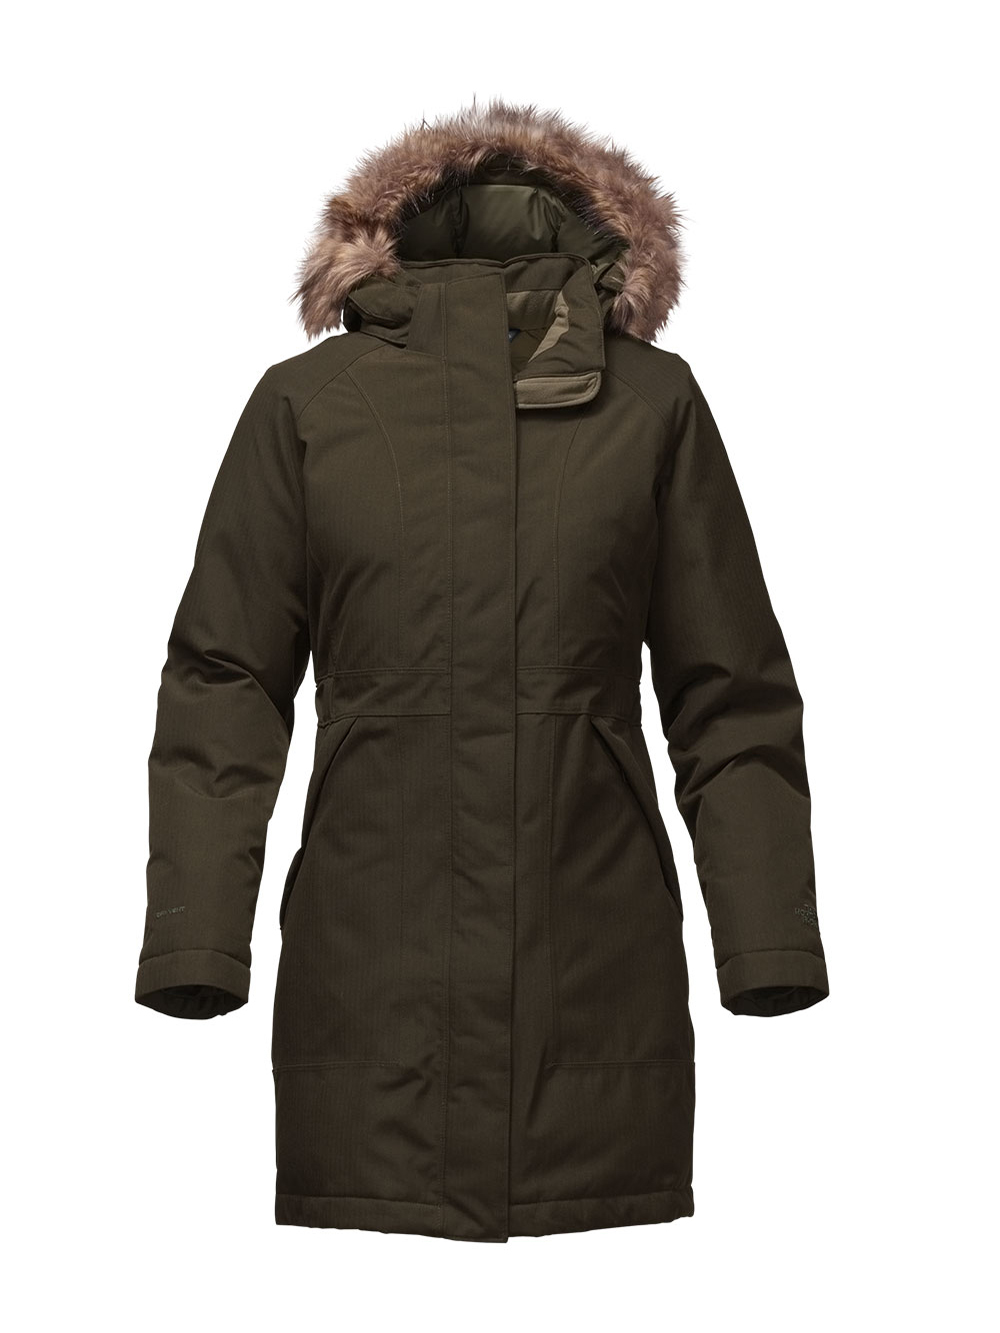 The North Face Women's Arctic Down Parka (Sizes S - L) - rosing green heather, xl